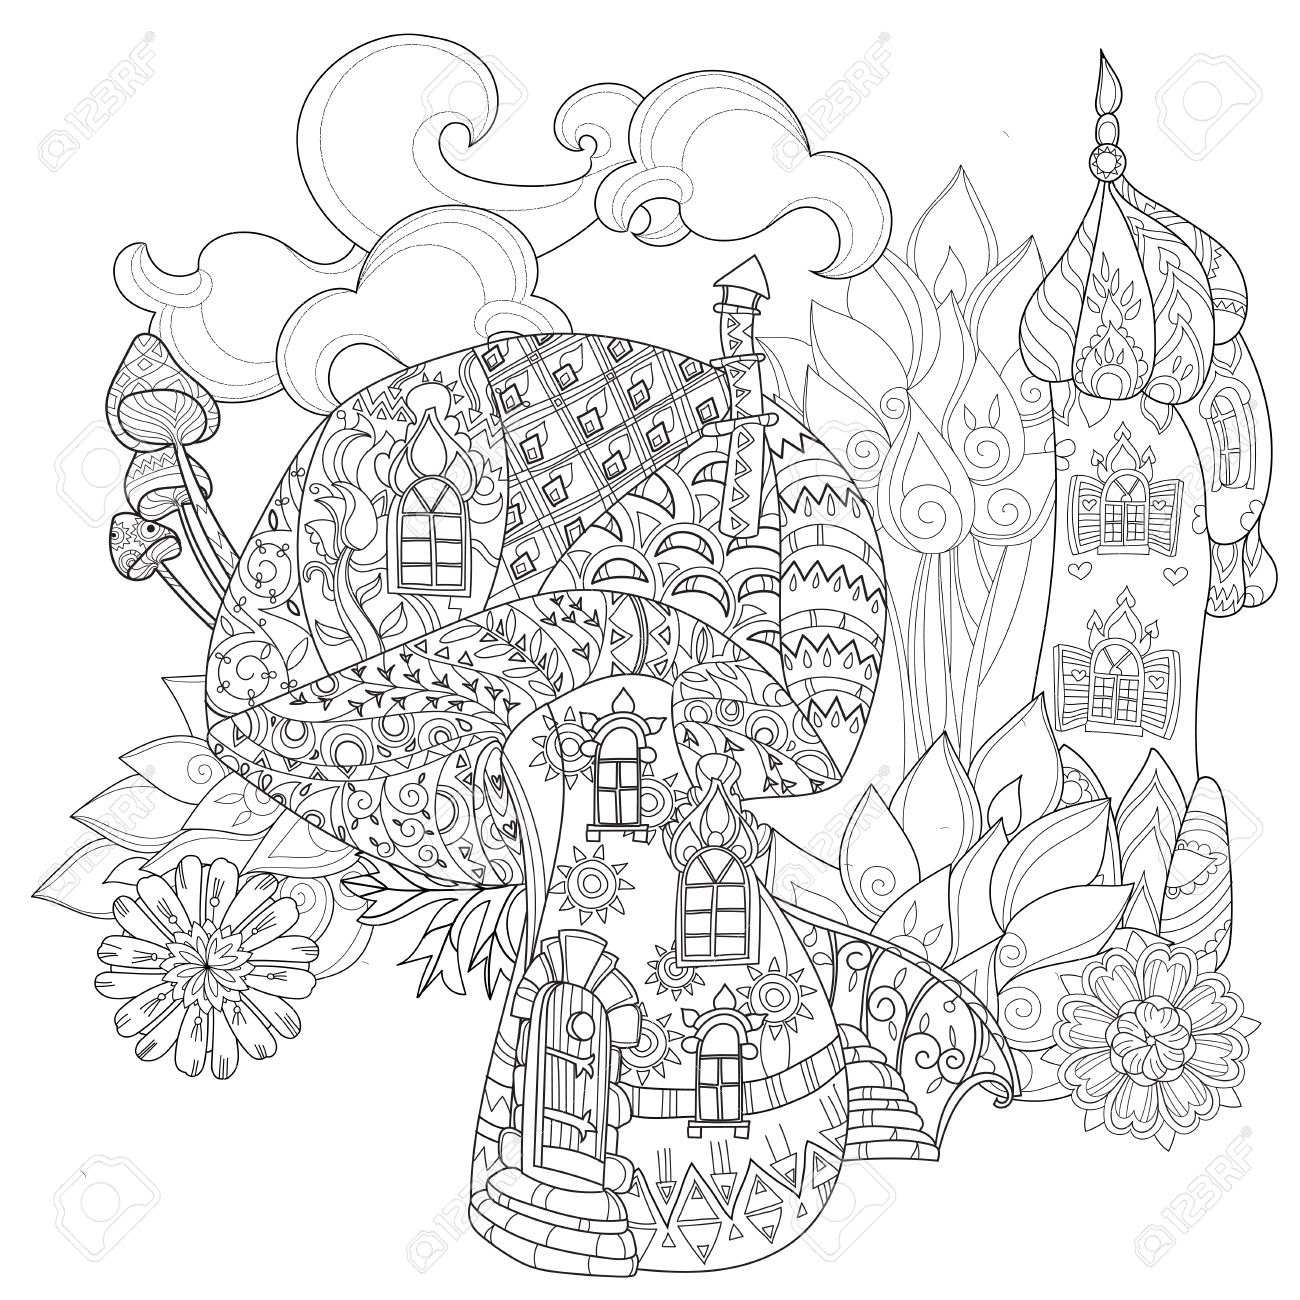 hand drawn doodle outline magic mushrooms and fairy house